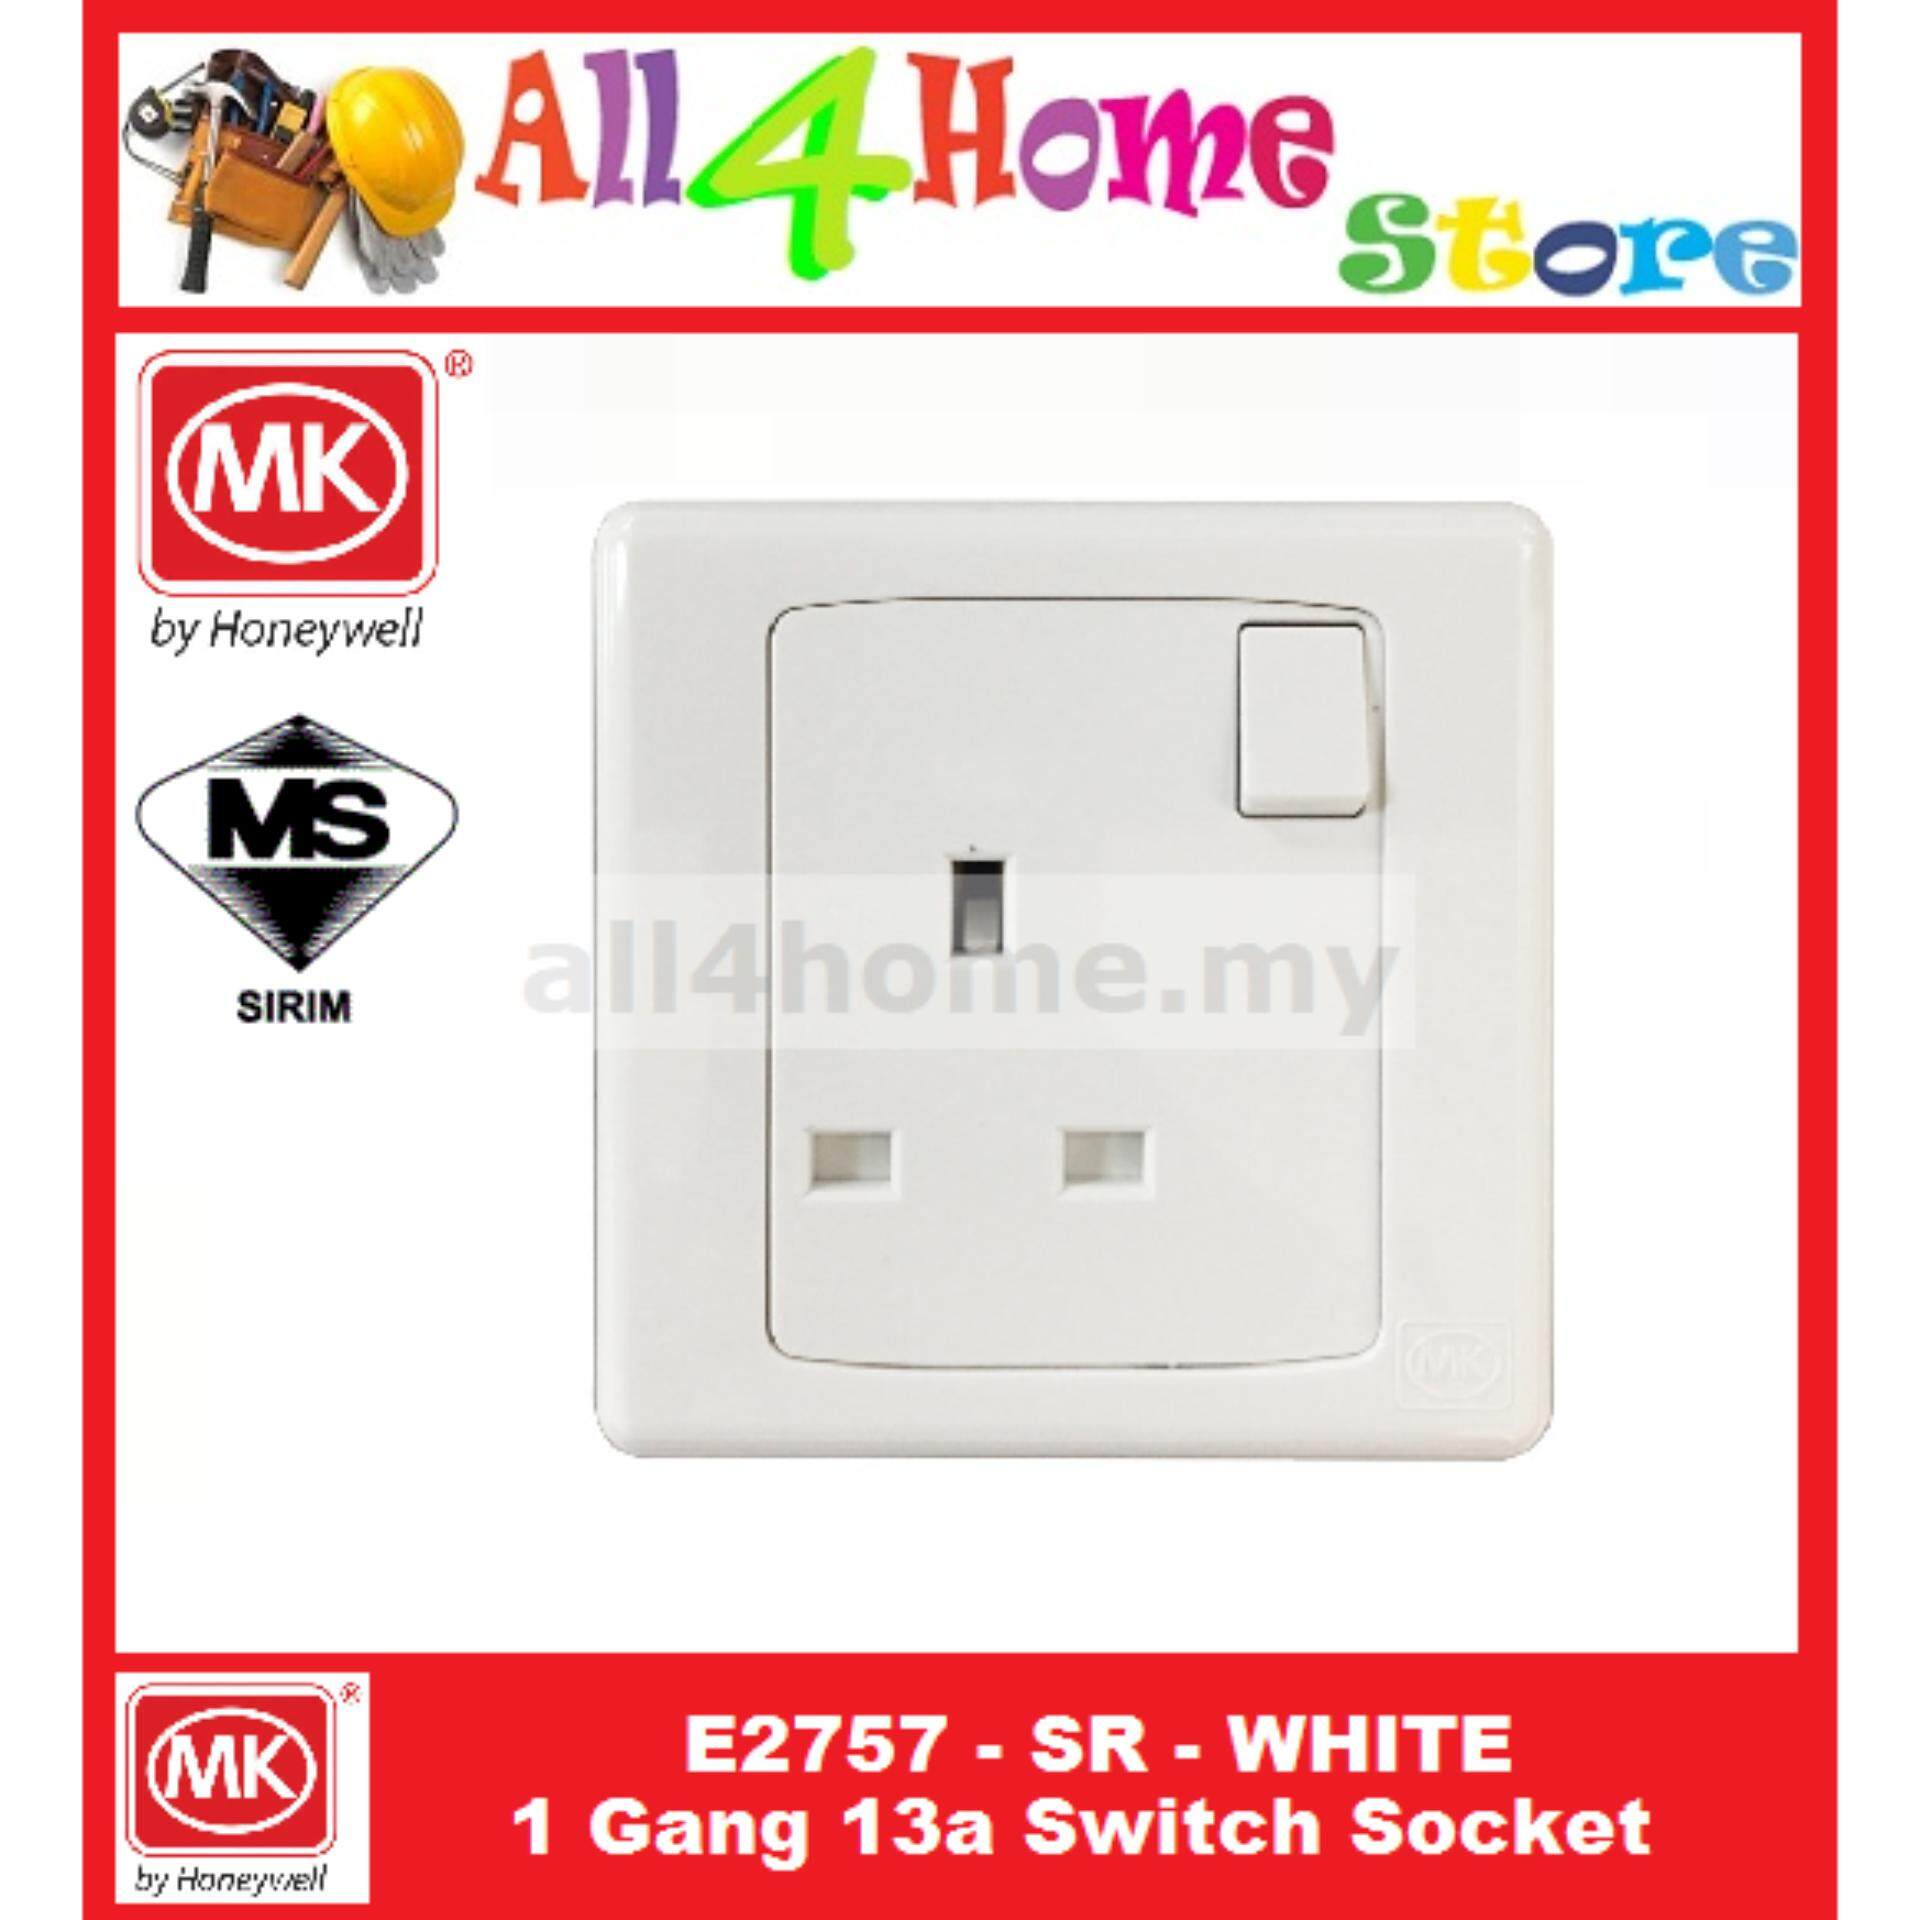 MK Home Electrical price in Malaysia - Best MK Home Electrical | Lazada